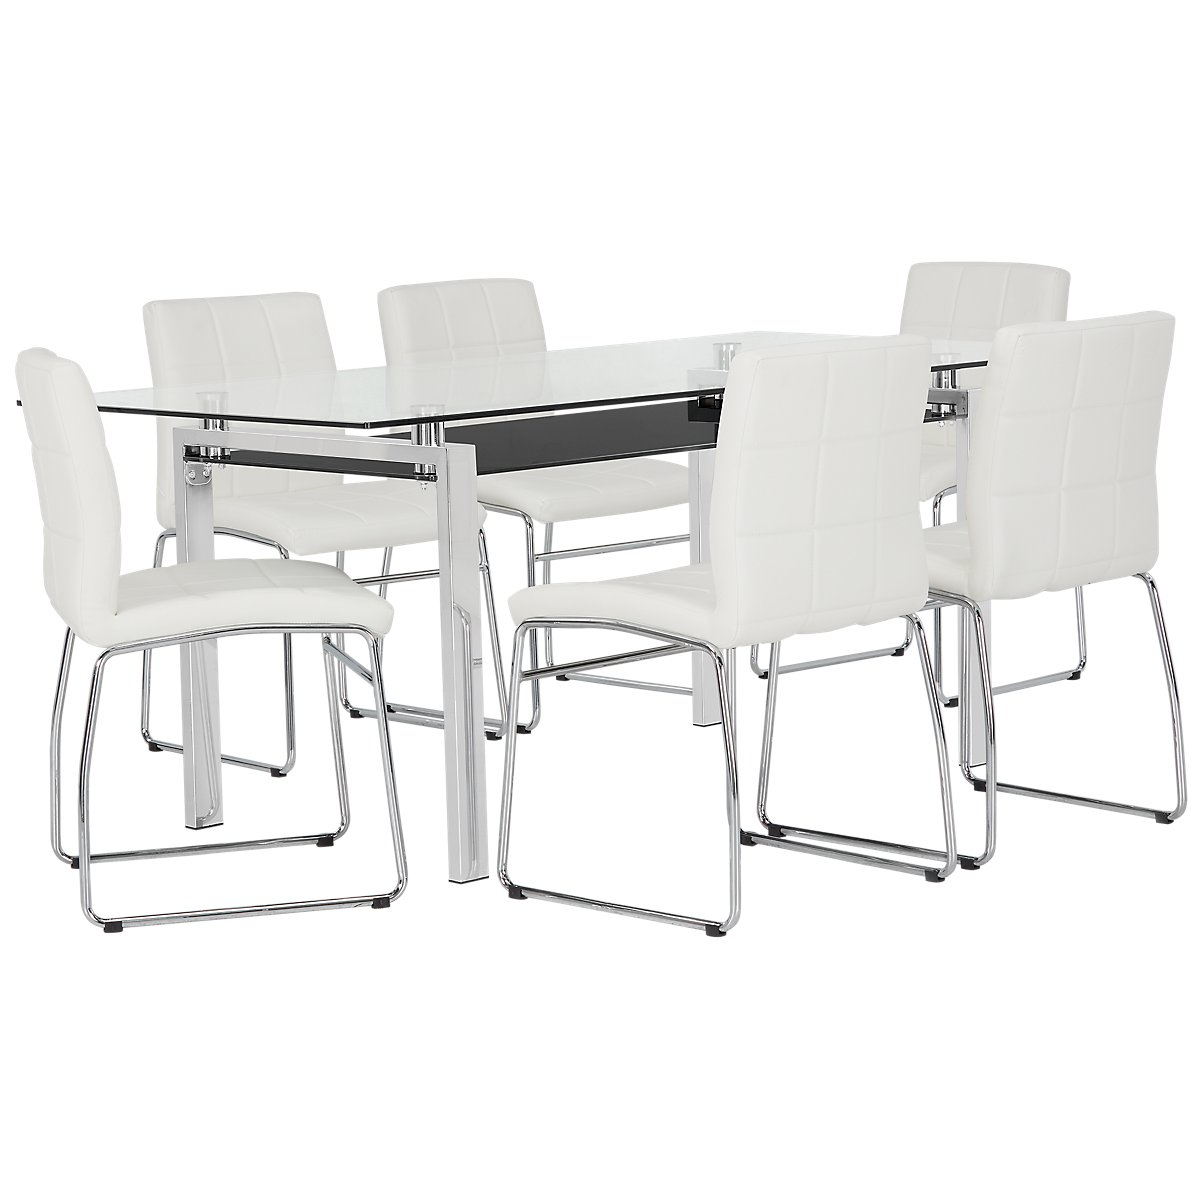 "Caleb White 70"" Table & 4 Upholstered Chairs"